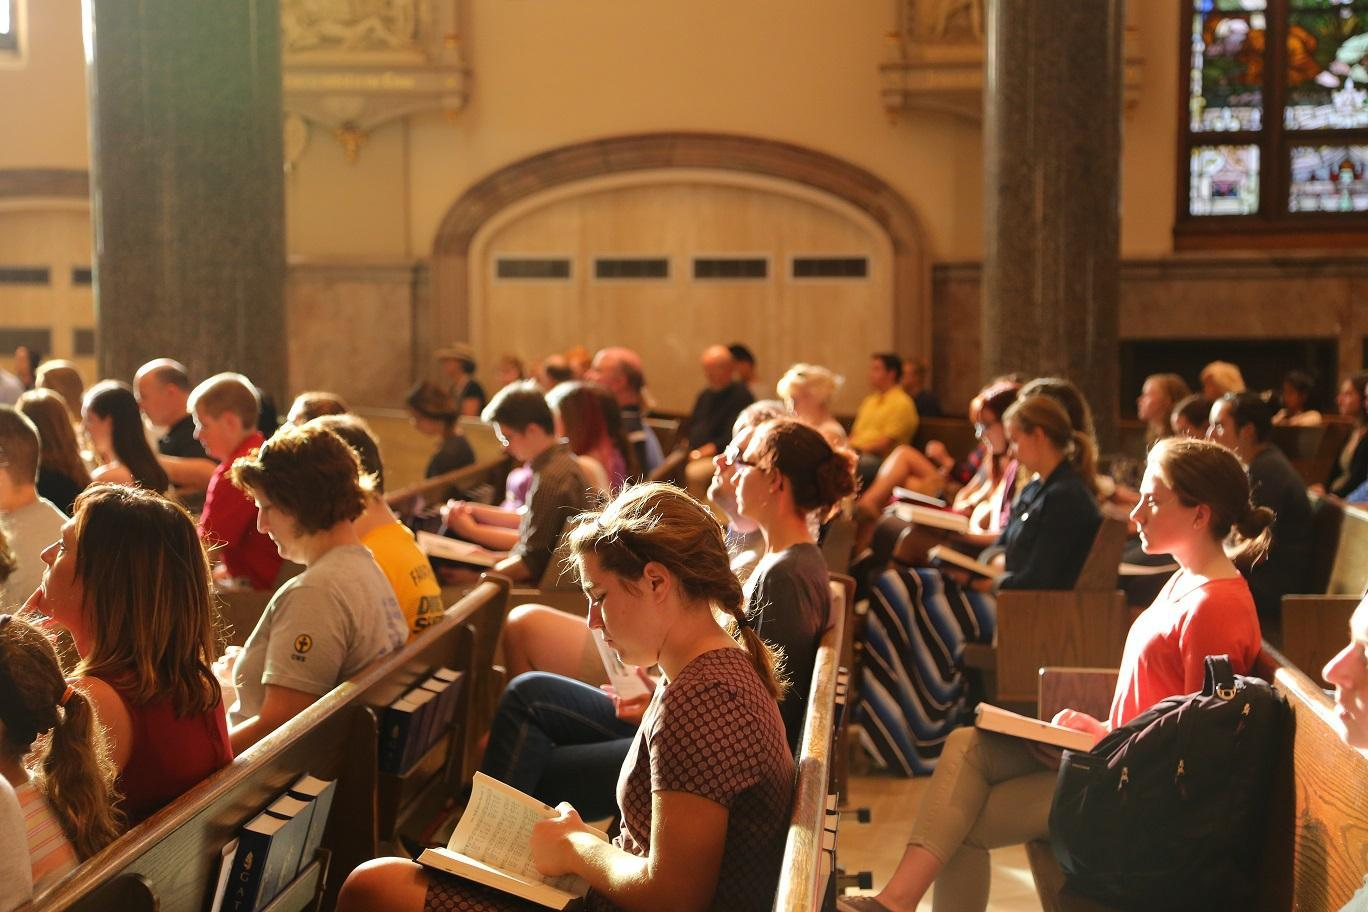 Parishioners at the James Foley remembrance mass. Photo by Yue Yin /yue.yin@marquette.edu